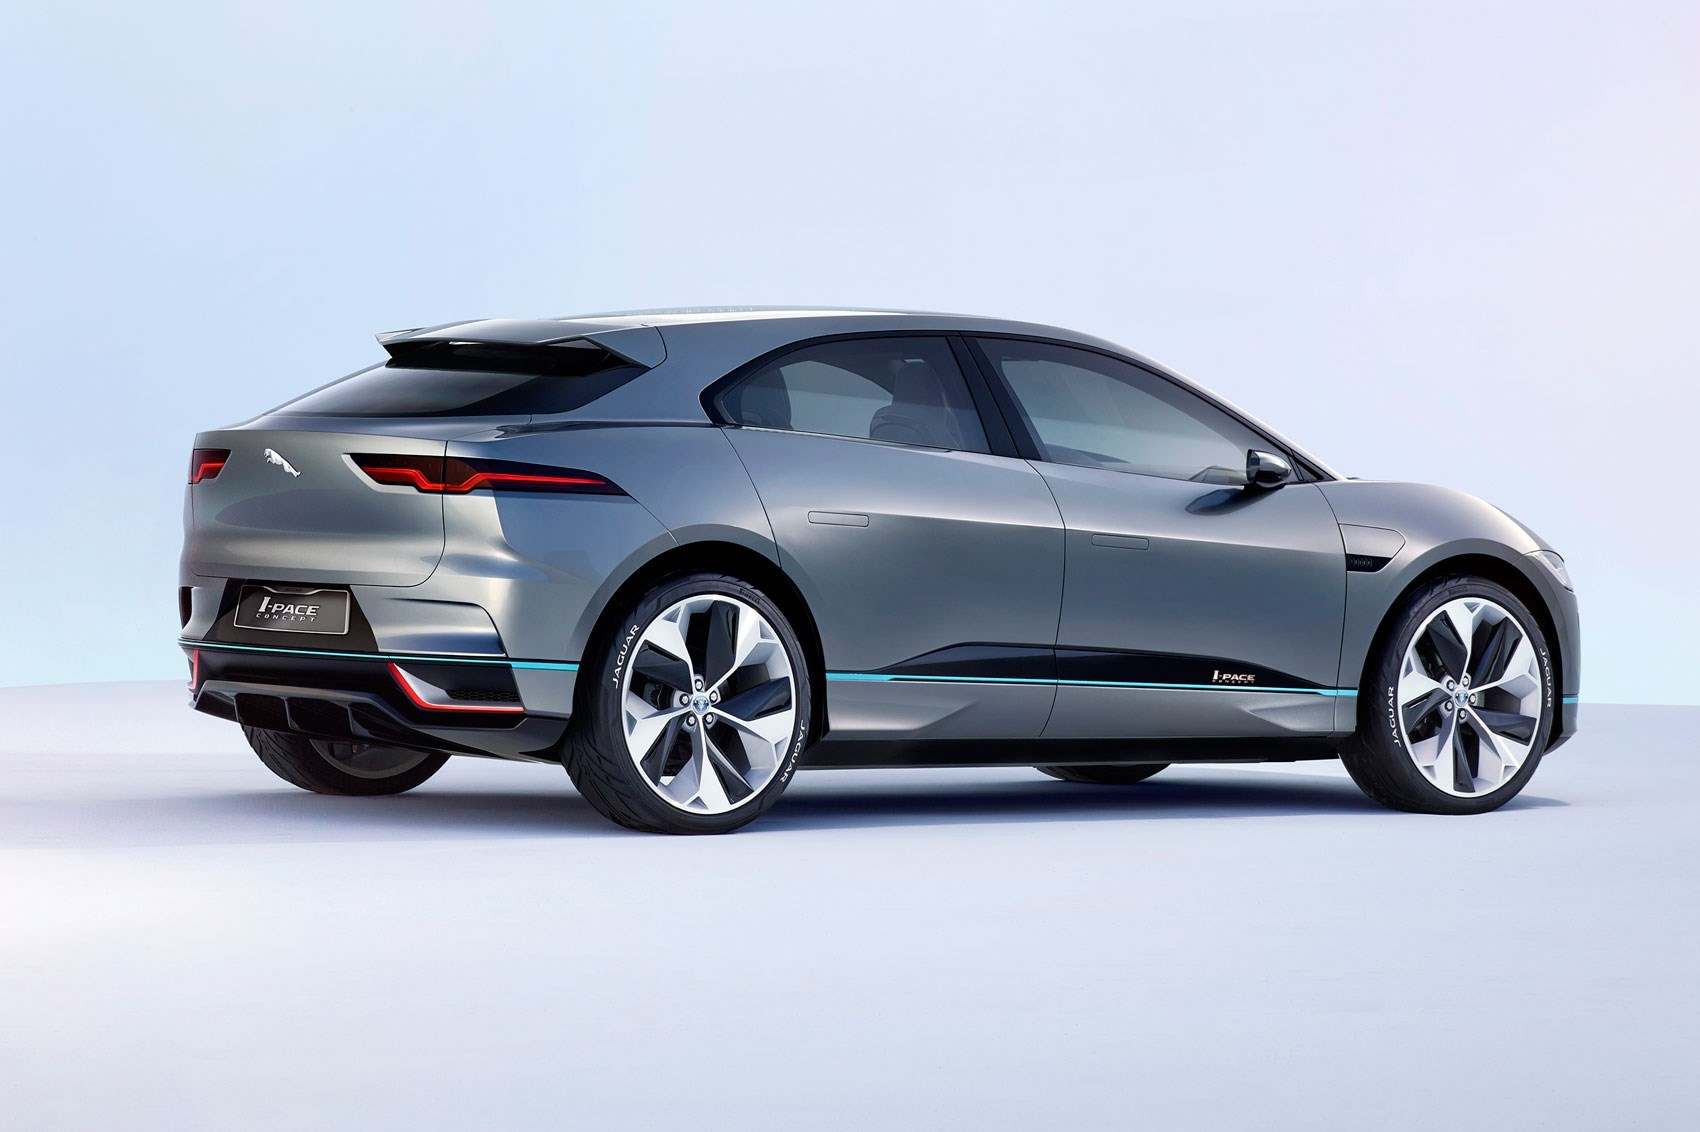 Attractive Alpine Sports Car: Itu0027s French For Sporty In 2017 Jaguar I Pace: The  Electric Jag Crossover ...